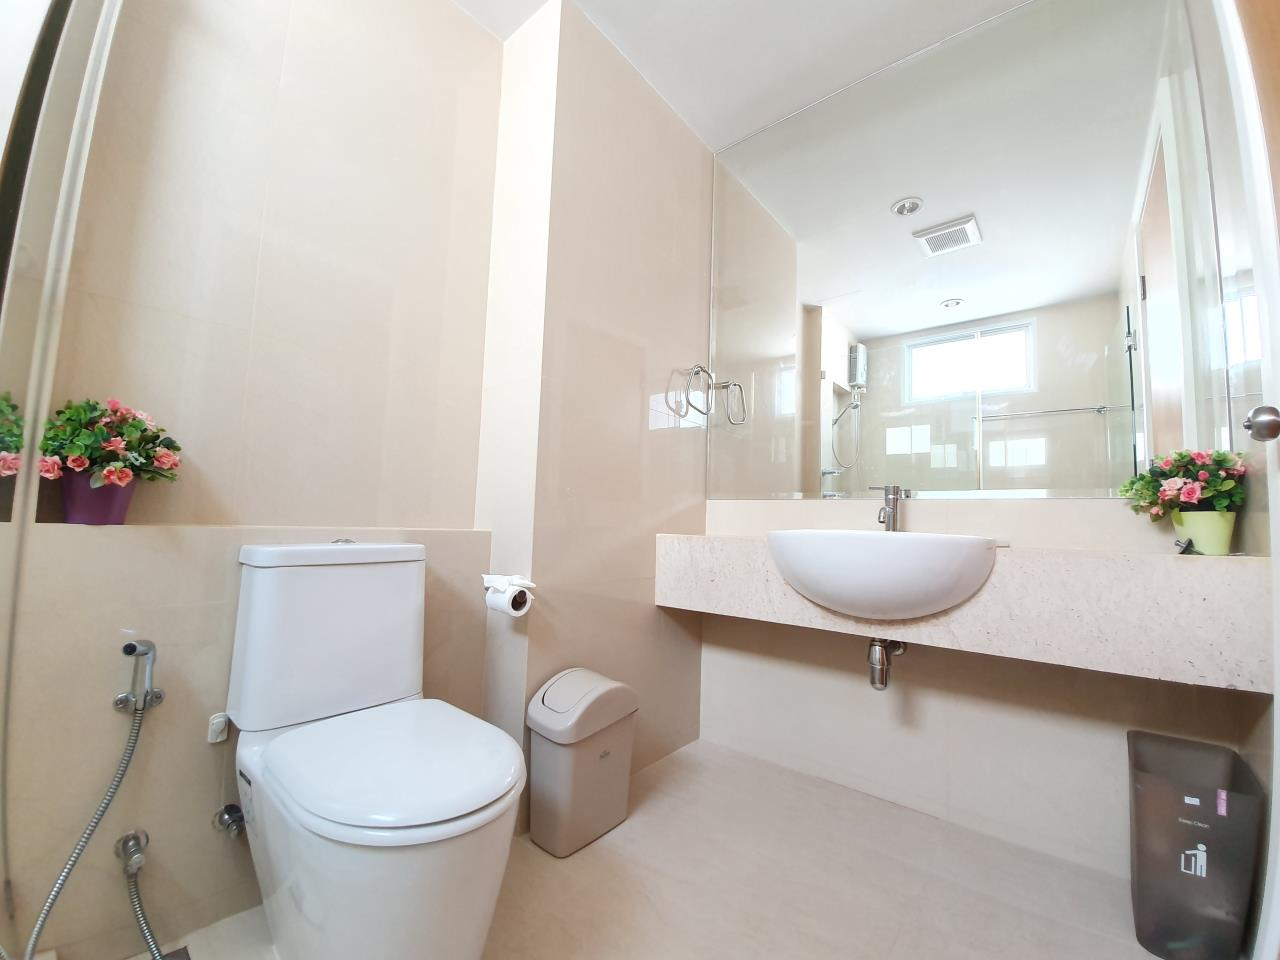 HOME - Real Estate Service Agency's The Breeze Hua Hin / 2 Beds (FOR RENT), เดอะ บรีซ หัวหิน / 2 ห้องนอน (ให้เช่า) T008 12